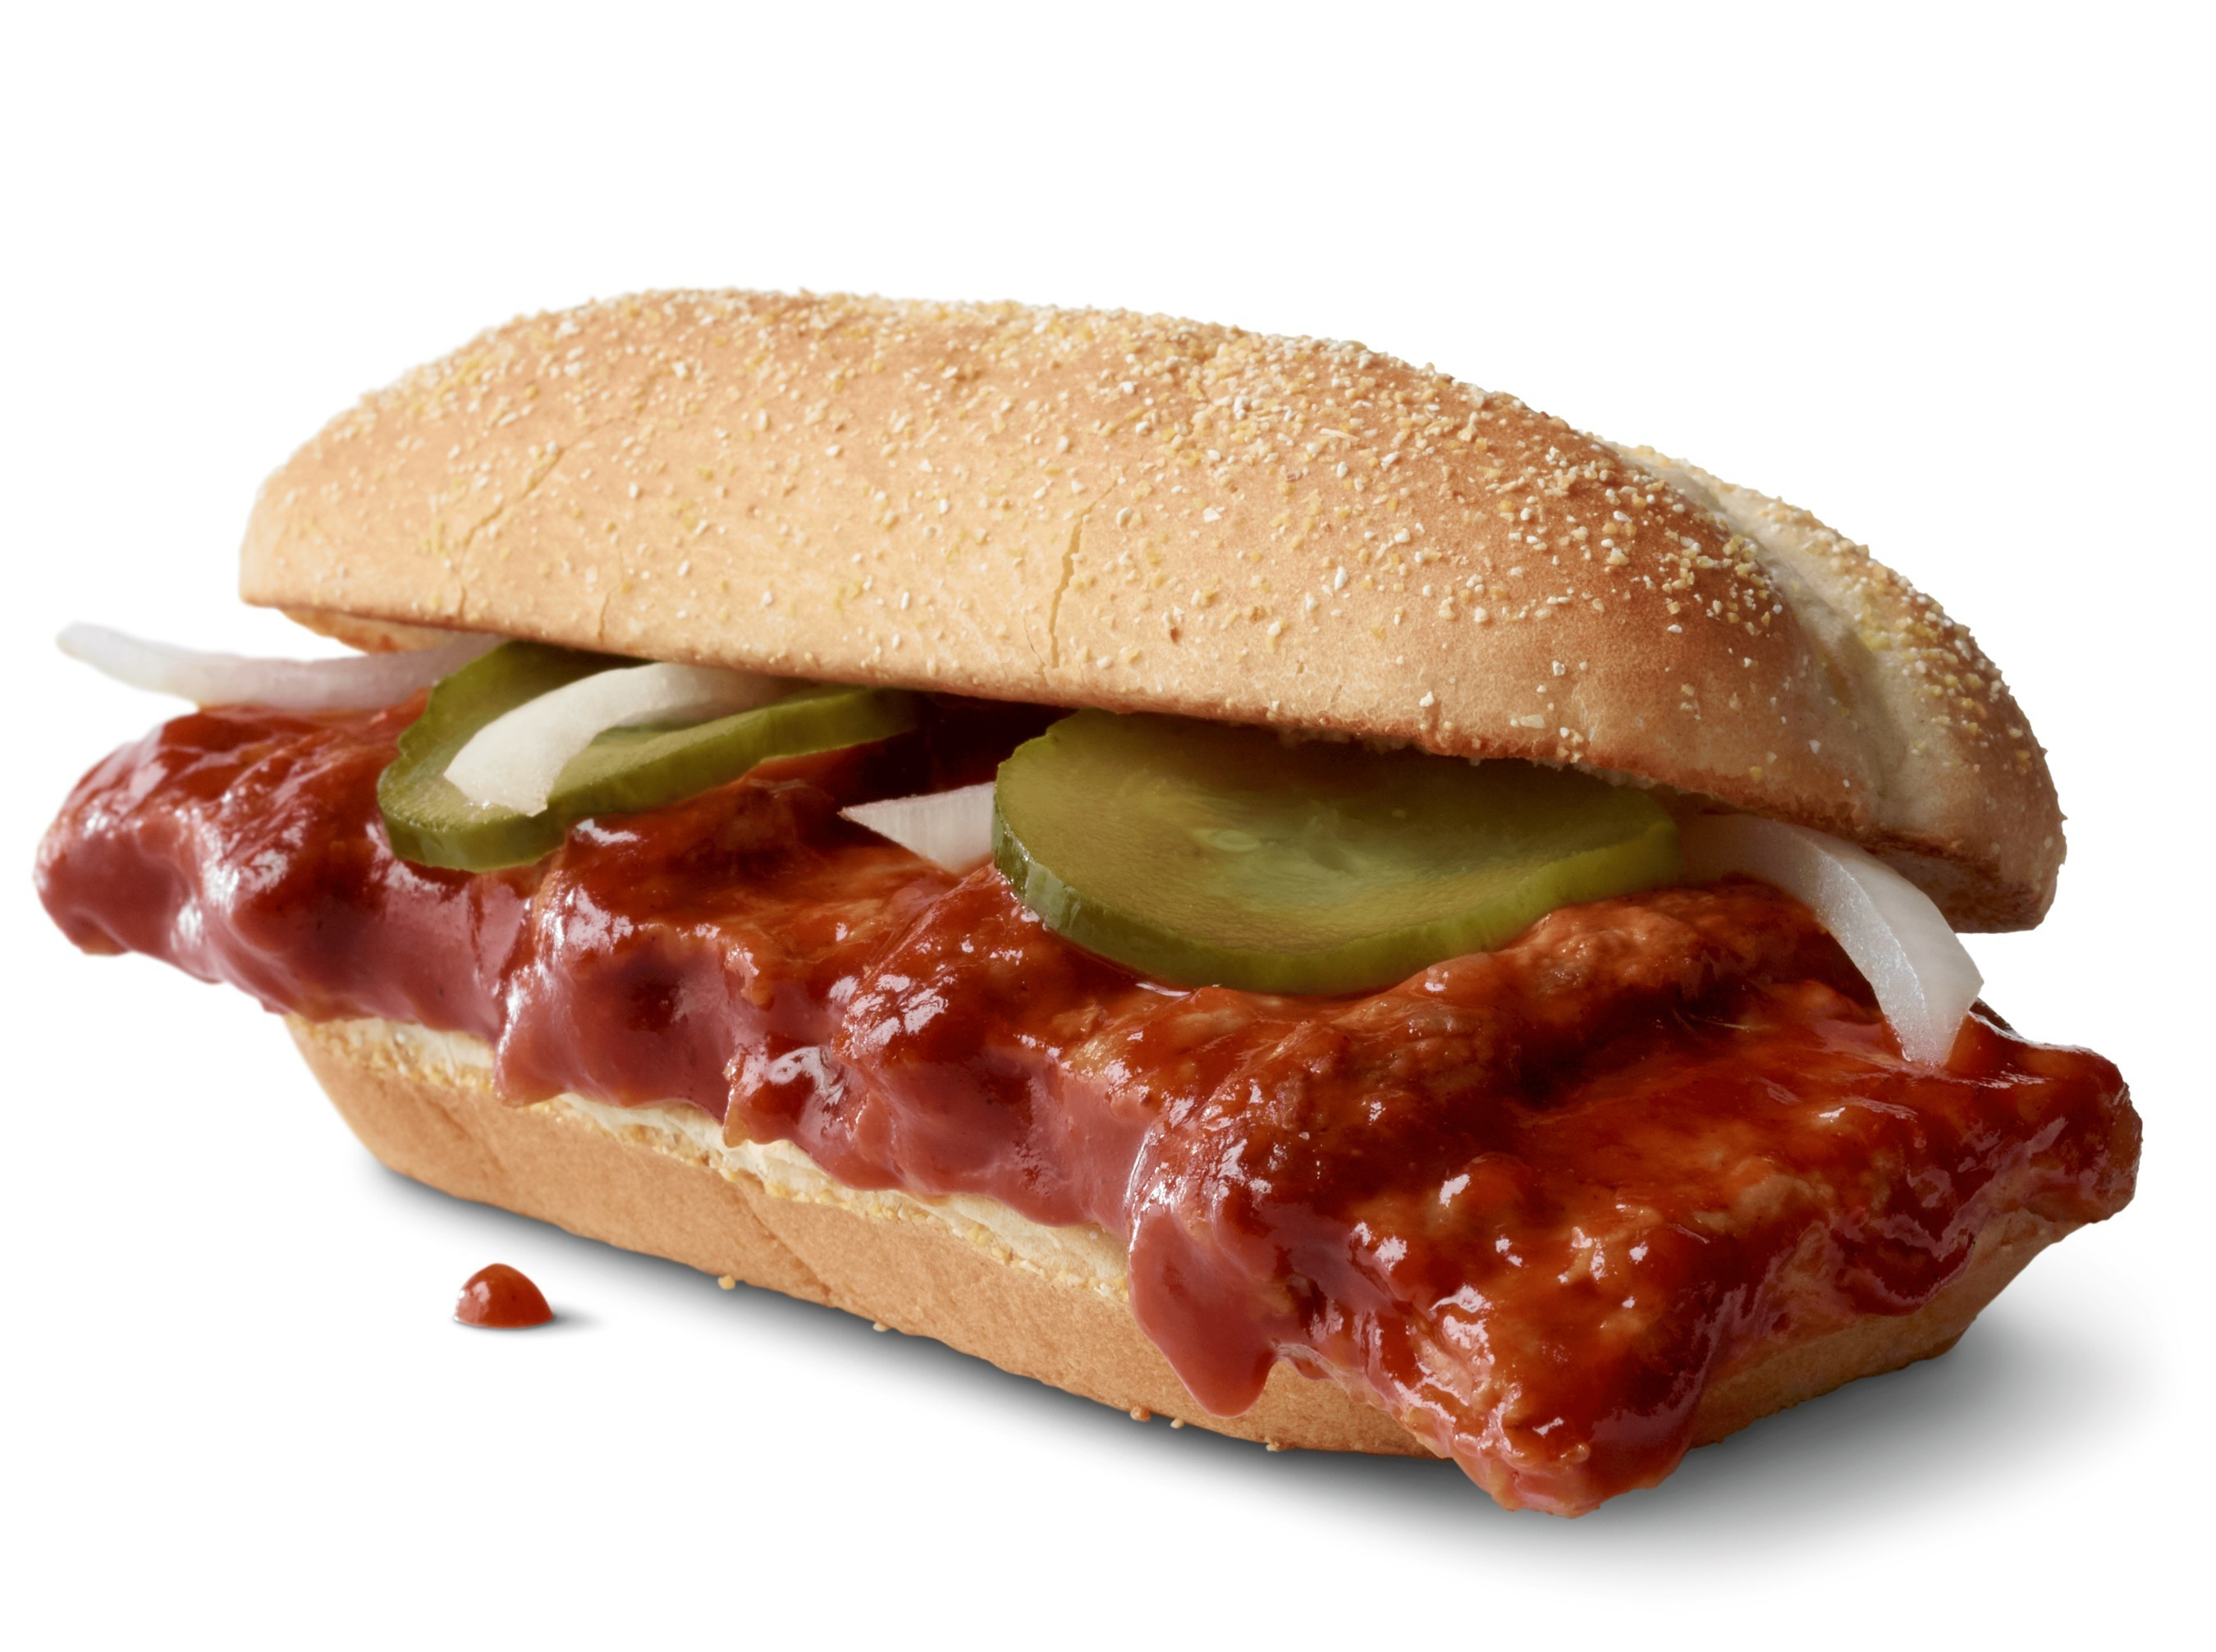 The McRib is back at McDonald's this fall, marking the 40th anniversary of its debut.